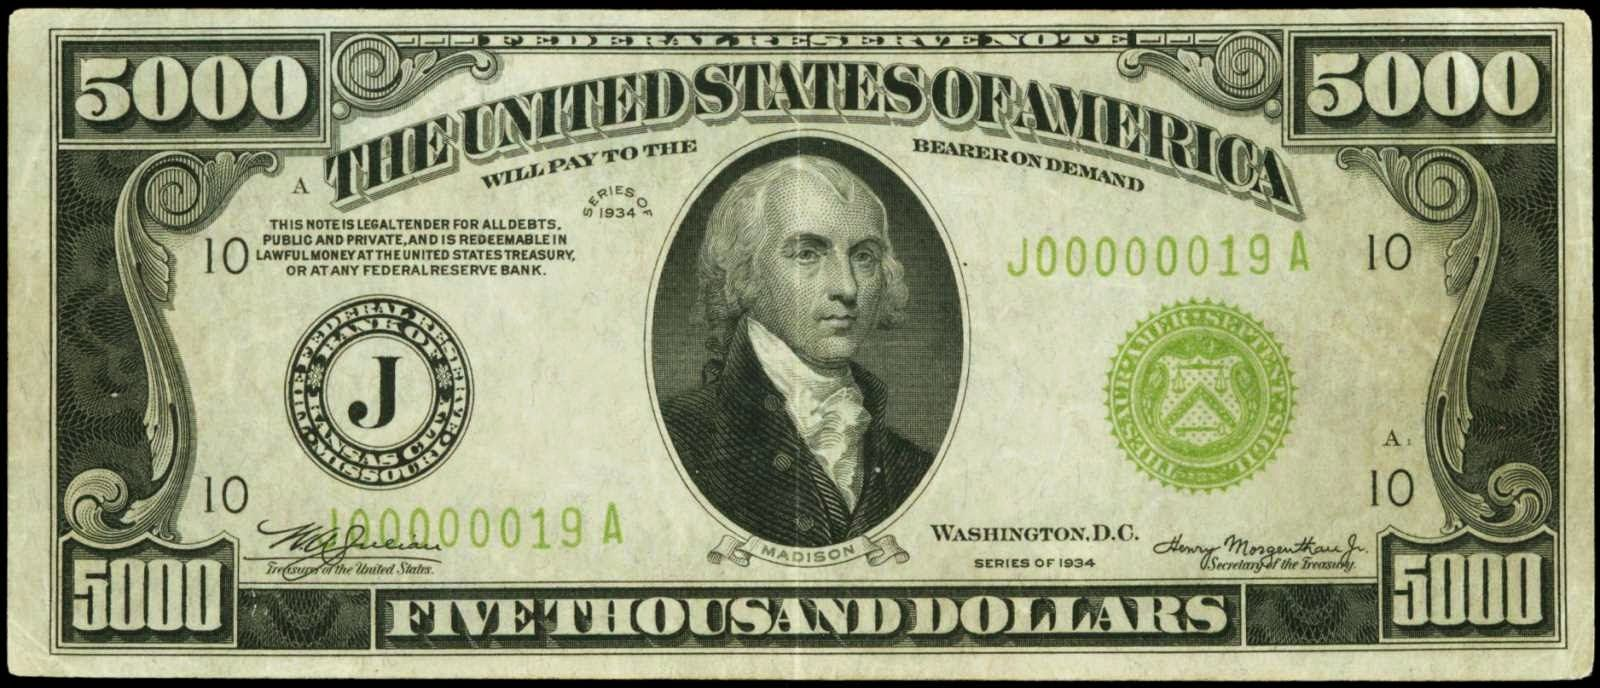 1934 Five Thousand Dollar Federal Reserve Note 5000 Dollar Bill